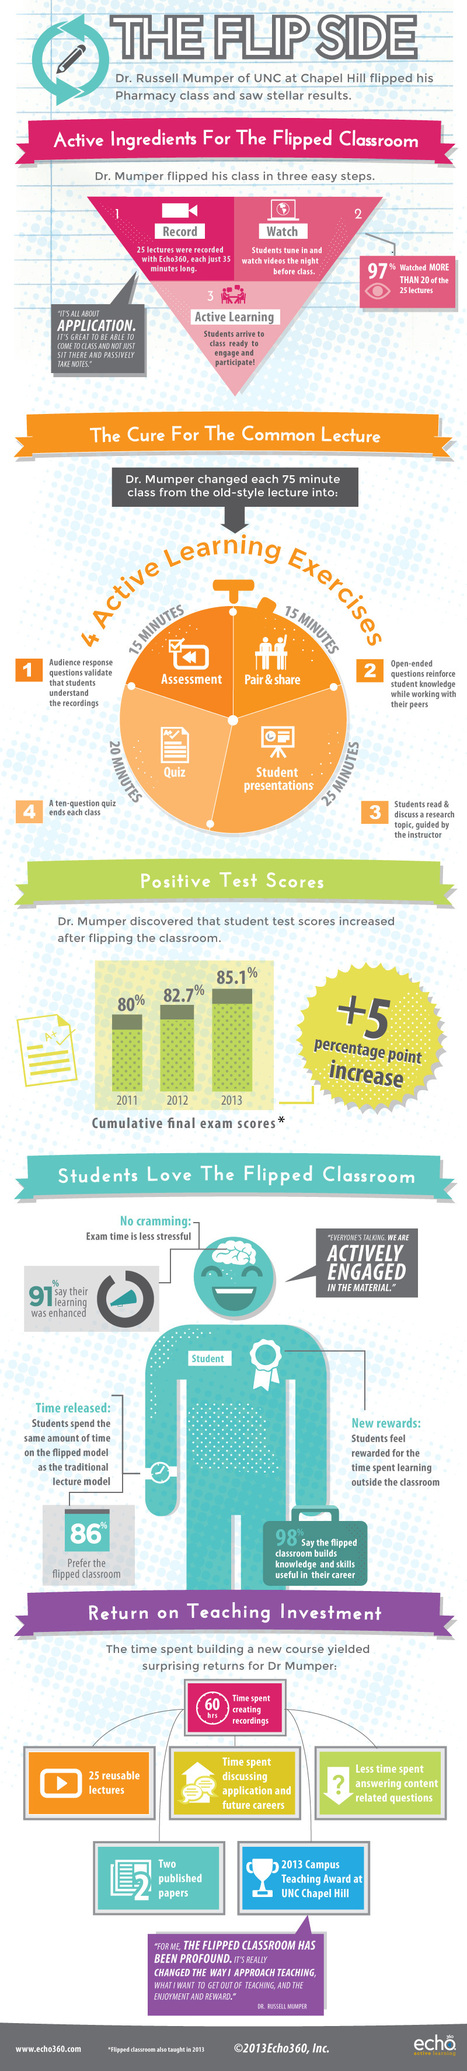 Teachers Practical Guide to A Flipped Classroom | Infographic | education k-12 | Scoop.it